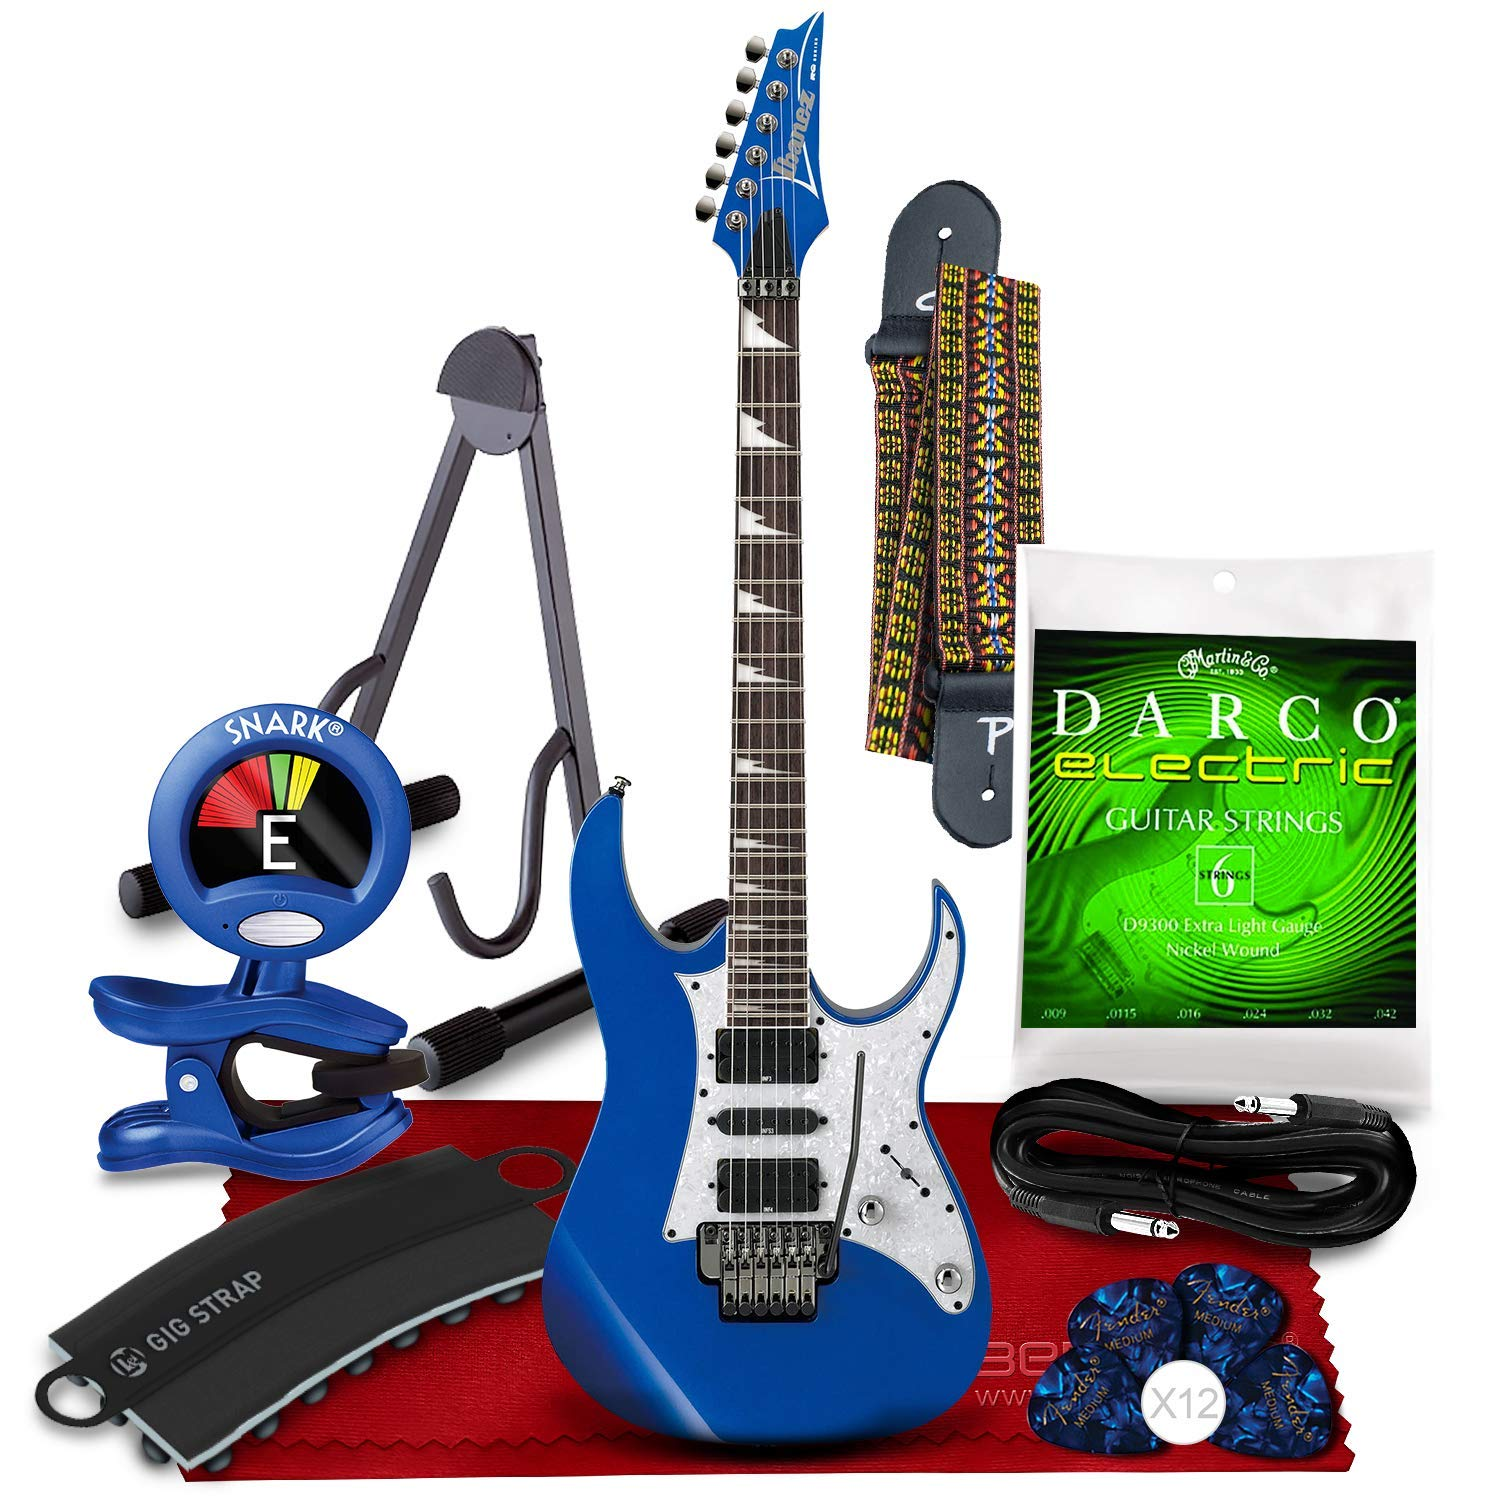 Cheap Ibanez RG450DX RG Series Electric Guitar (Starlight Blue) + Blue Clip-On Tuner Strap Strap Attachment Guitar Stand Strings Picks Cable and Fibertique Microfiber Cleaning Cloth Black Friday & Cyber Monday 2019